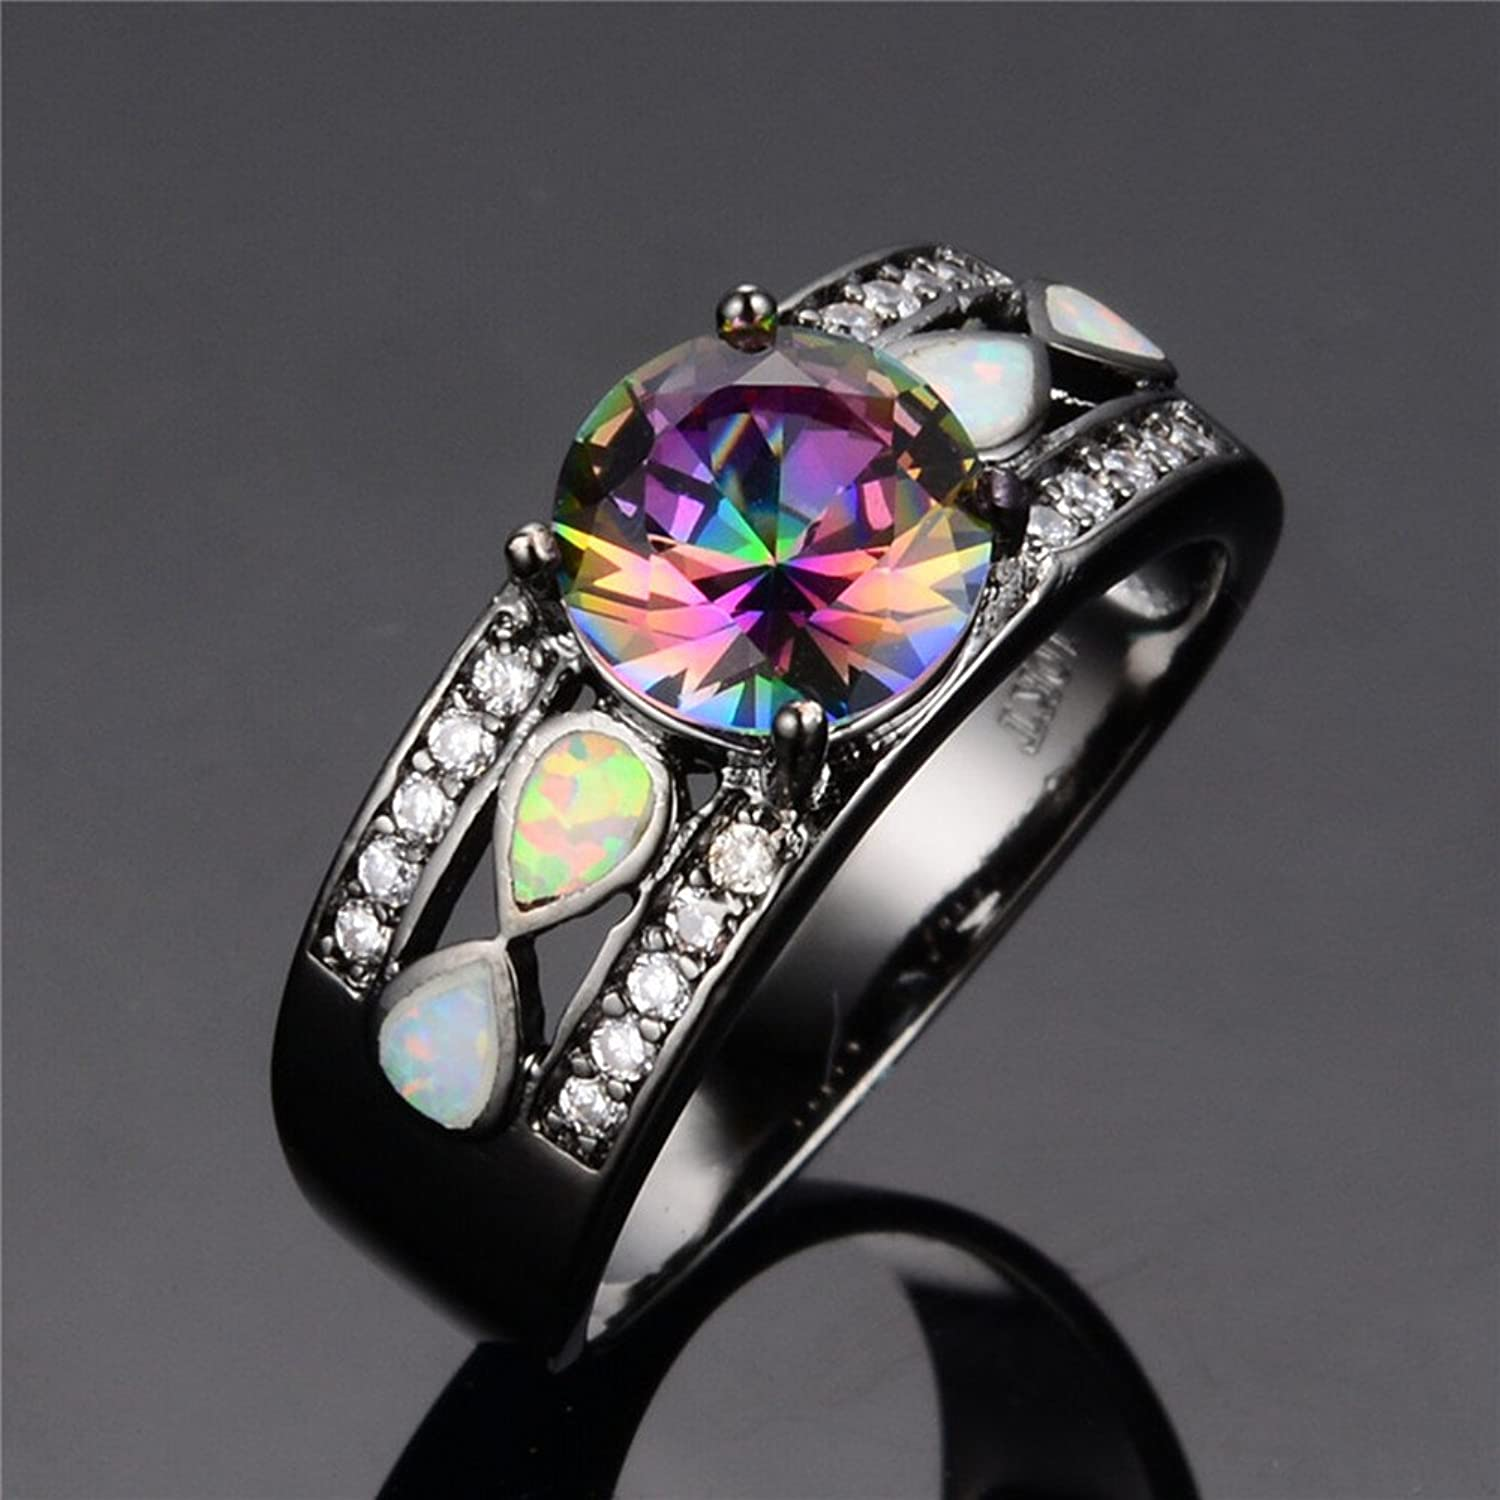 kattia ring trustmark best halo jewelry topaz heart pinterest rings on mystic promise and cut jewelers images inlay fire rainbow